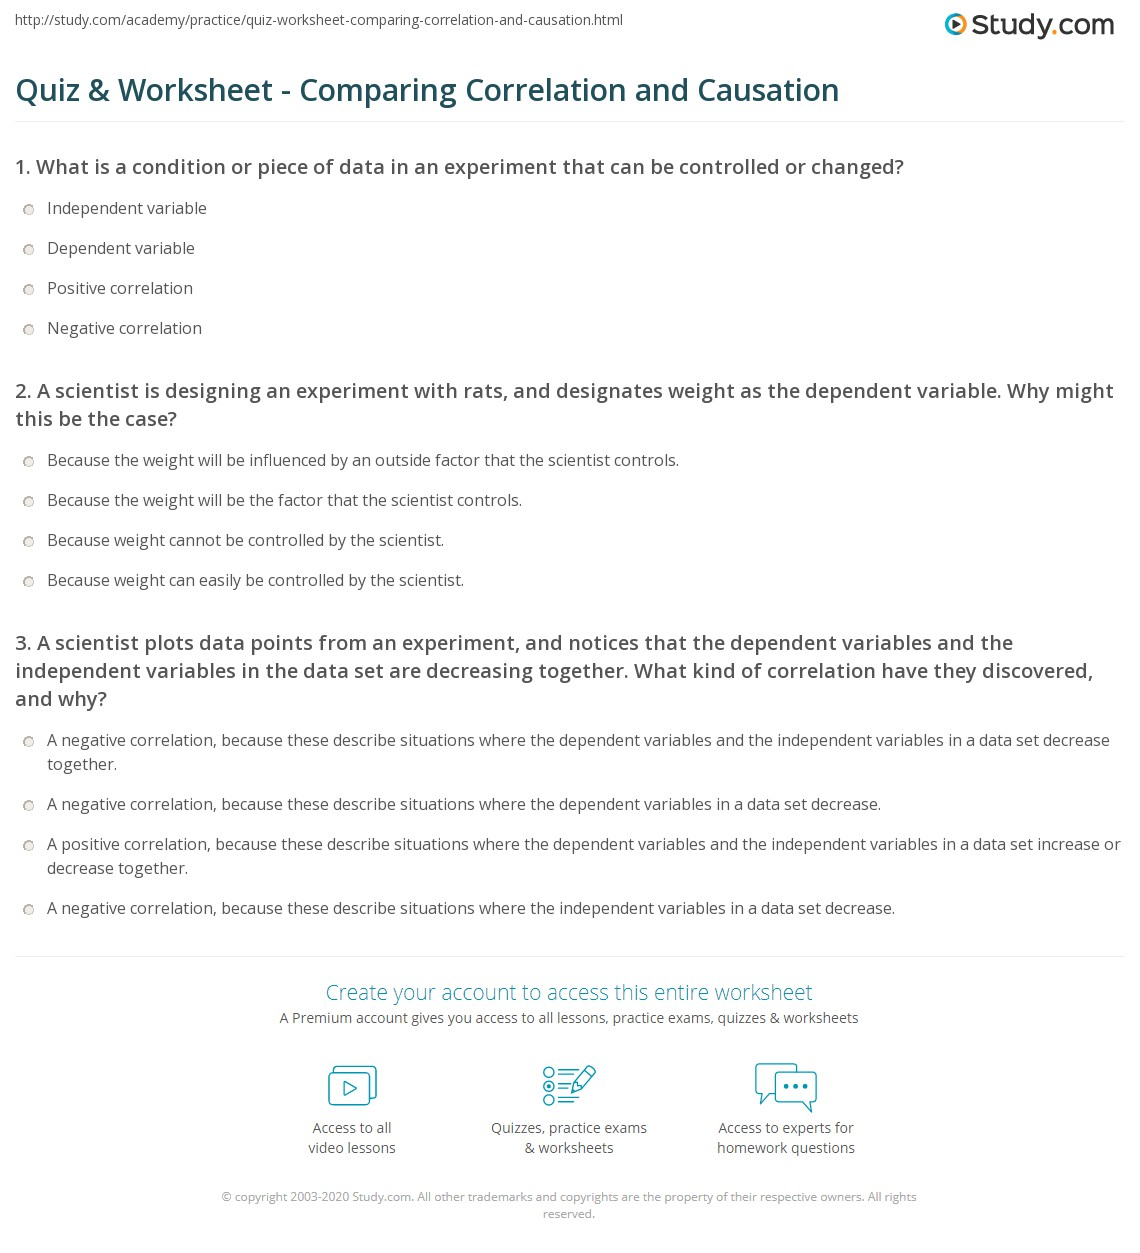 Aldiablosus  Picturesque Quiz Amp Worksheet  Comparing Correlation And Causation  Studycom With Engaging Print Correlation Vs Causation Differences Amp Definition Worksheet With Charming Free Worksheets For Kindergarten Reading Also Goal Setting Smart Worksheet In Addition Data Representation Worksheets And First Grade Free Worksheets Printables As Well As  Continents Worksheets Additionally French Numbers  Worksheet From Studycom With Aldiablosus  Engaging Quiz Amp Worksheet  Comparing Correlation And Causation  Studycom With Charming Print Correlation Vs Causation Differences Amp Definition Worksheet And Picturesque Free Worksheets For Kindergarten Reading Also Goal Setting Smart Worksheet In Addition Data Representation Worksheets From Studycom